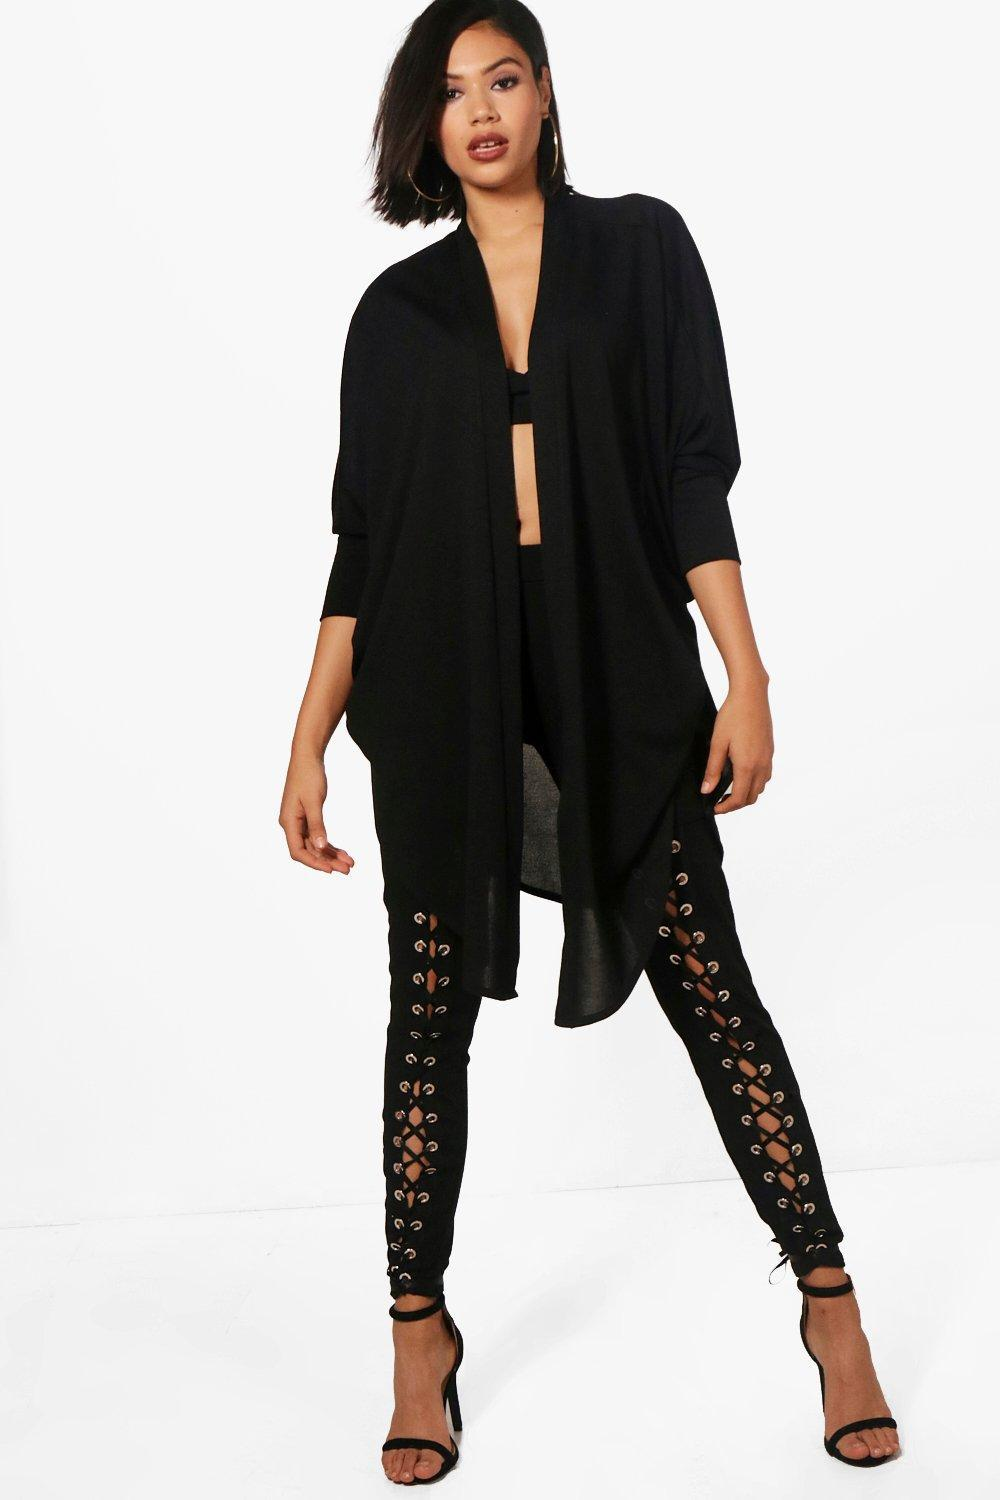 Boohoo Jodie Waterfall Split Back Cardigan in Black | Lyst